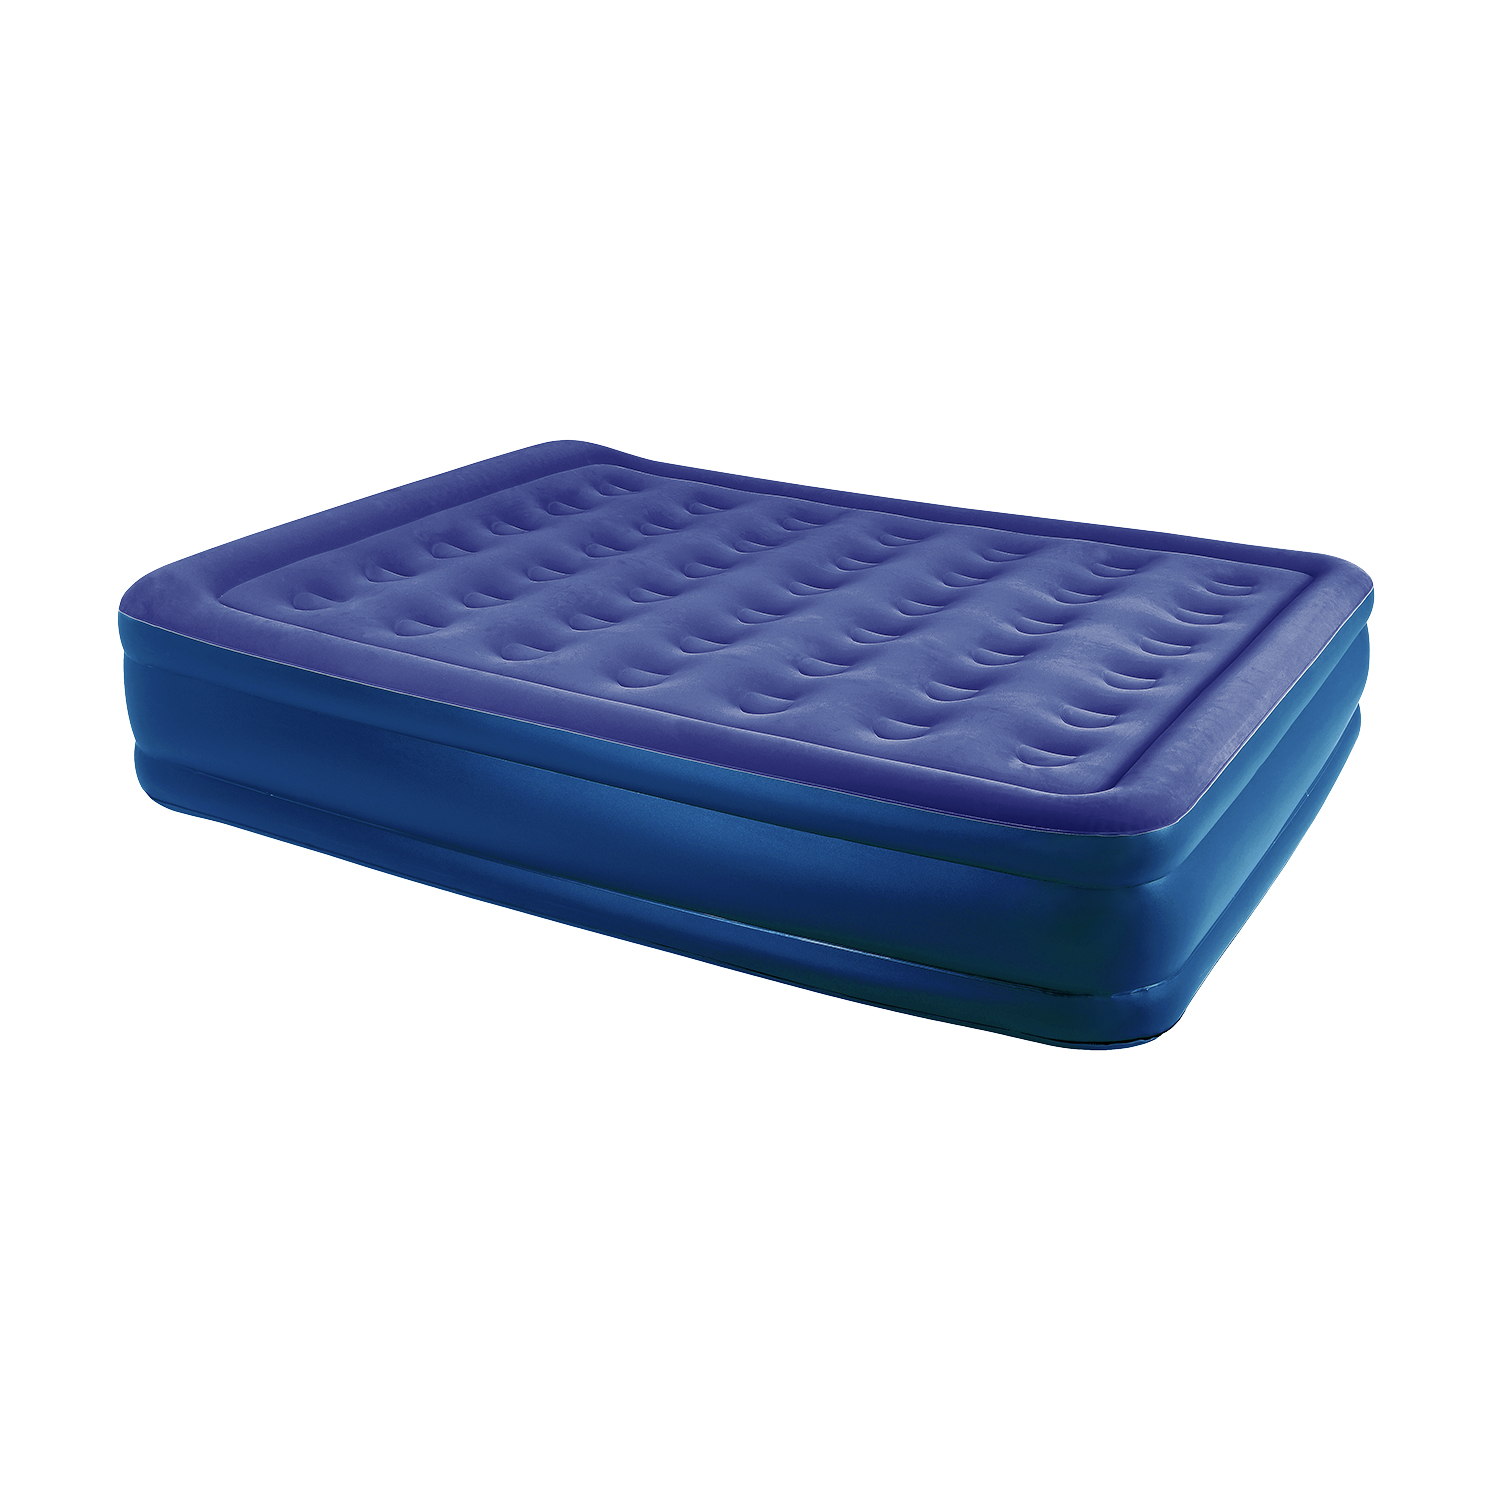 Comfy Mattress Stansport Deluxe Air Bed Double High